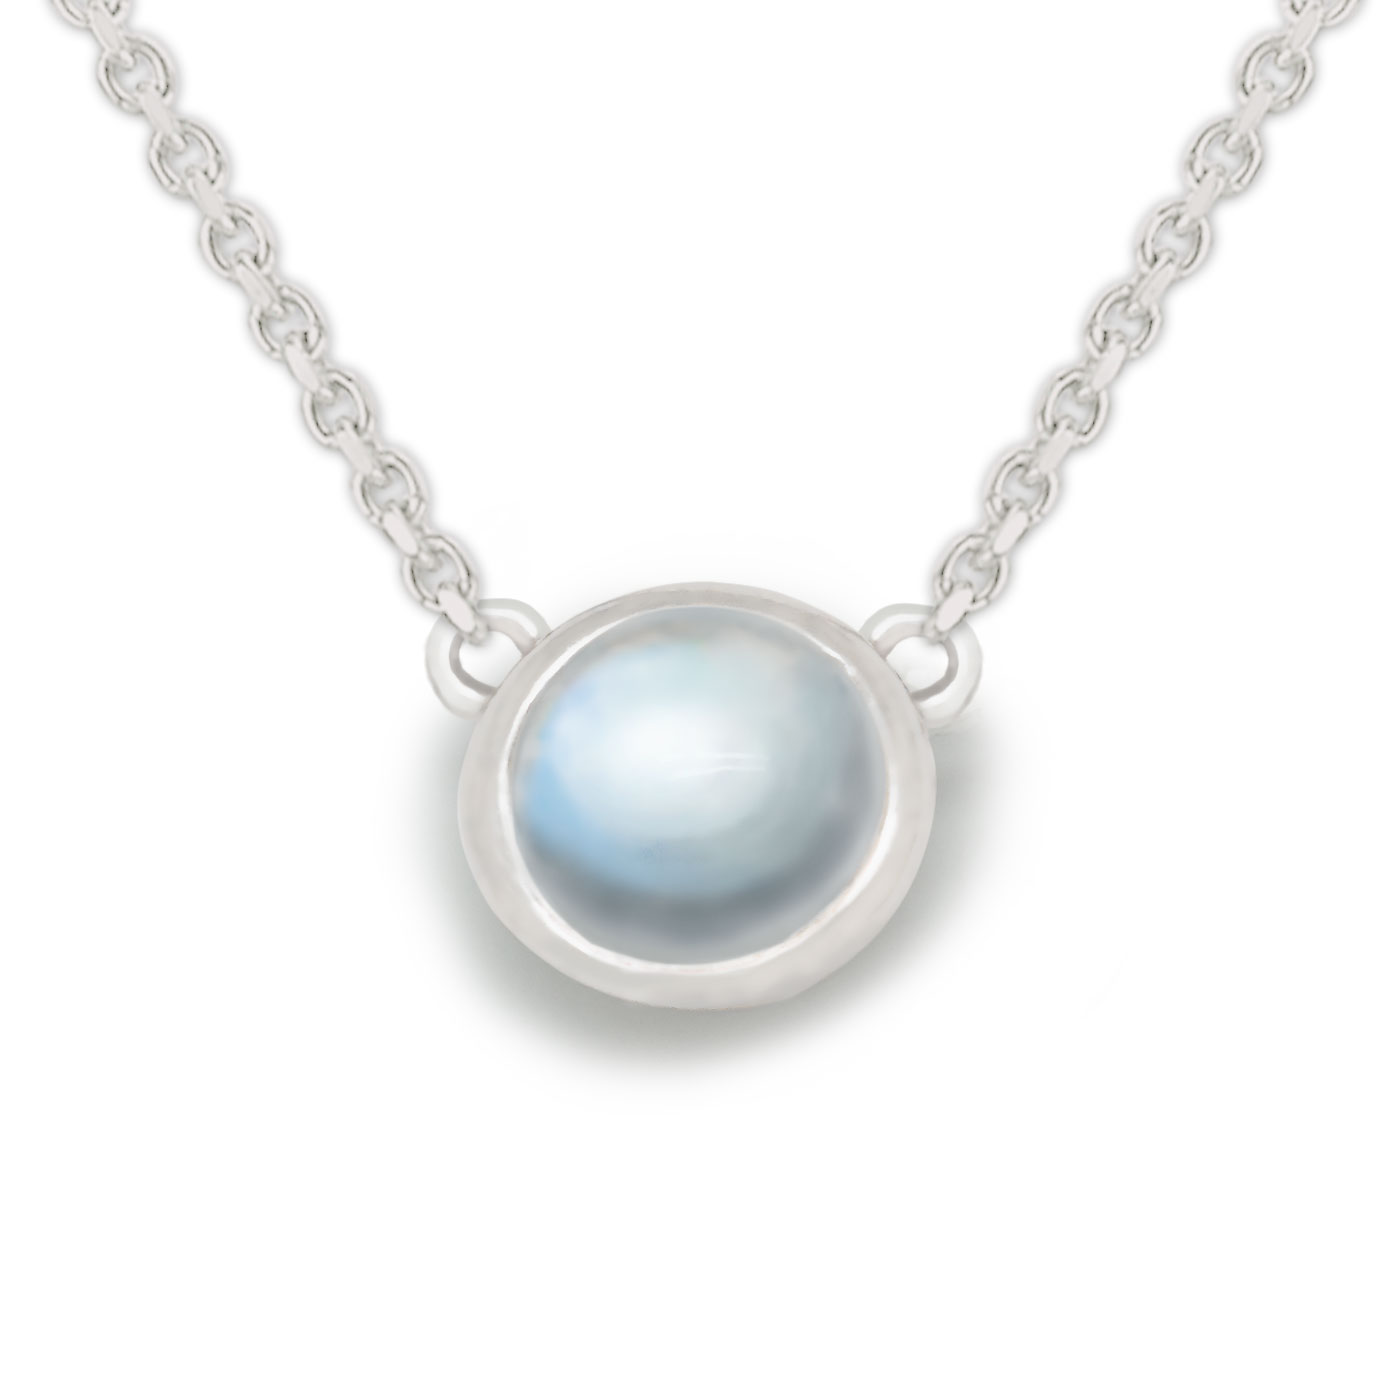 Concise Round 925 Sterling Silver Sri Lanka Genuine Moonstone Necklace 2019 icc cricket world cup sri lanka v south africa